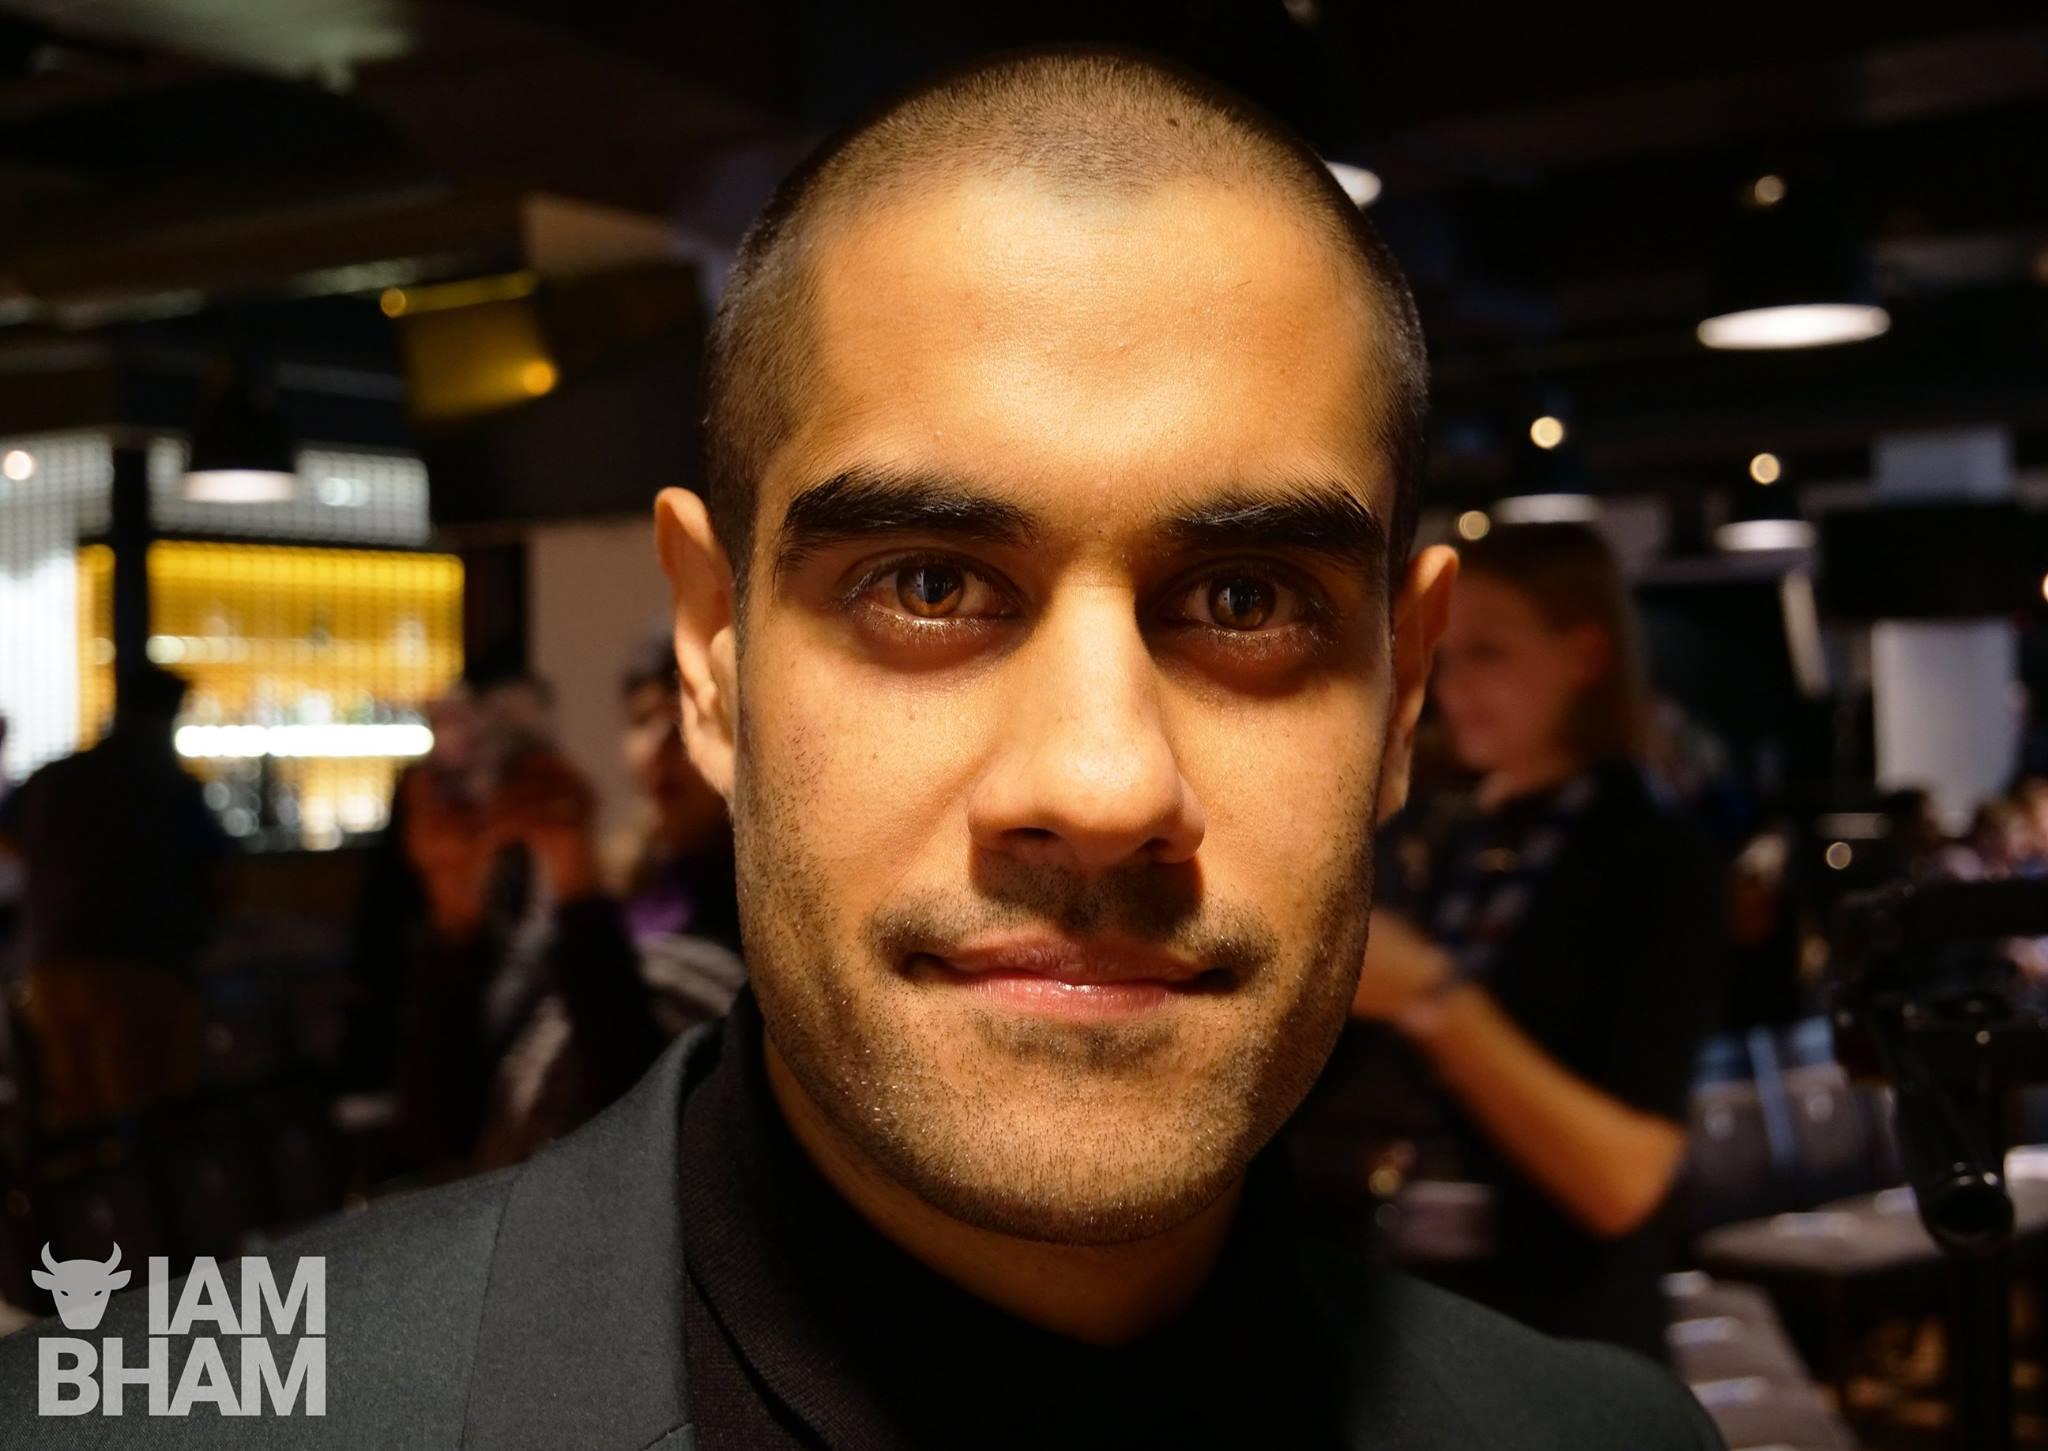 Actor Sacha Dhawan has appeared in popular shows Sherlock and Iron Fist